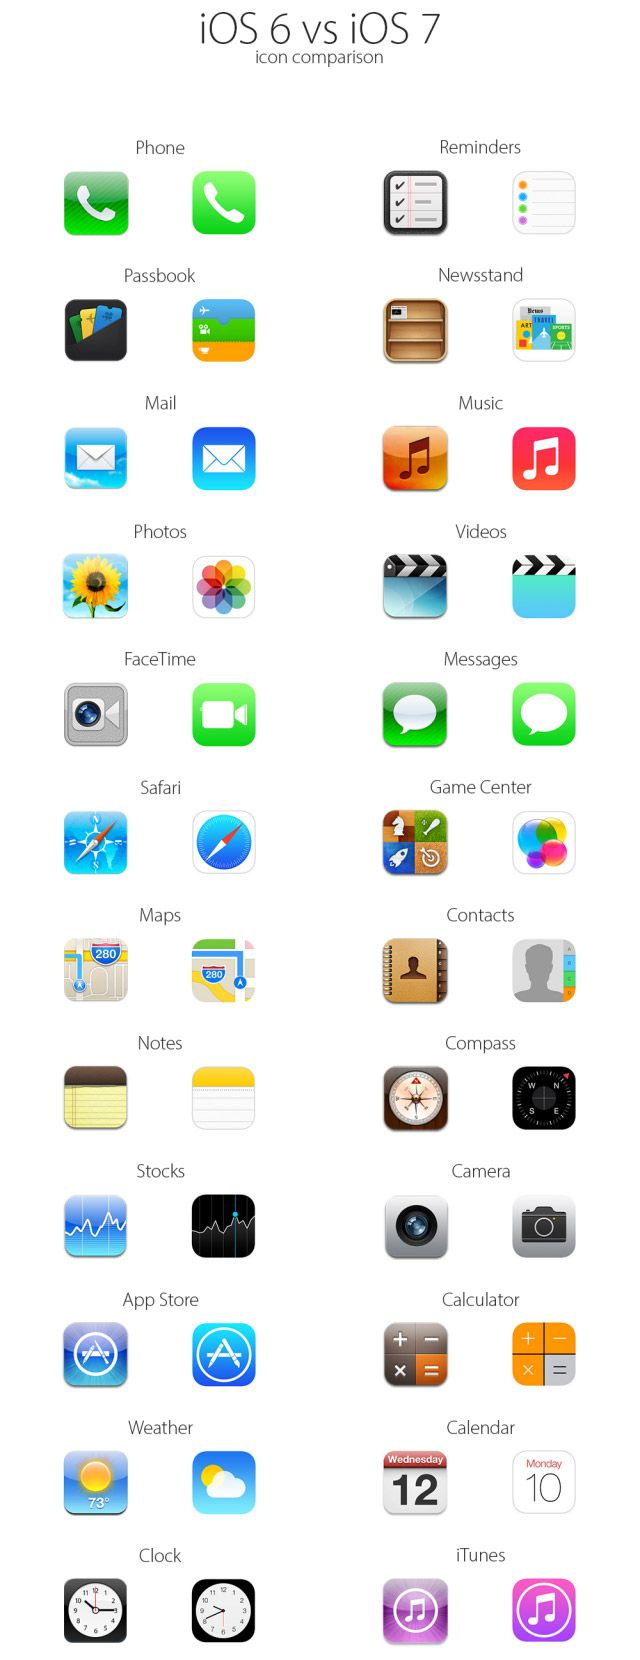 IOS 7 it is coming out in the fall! Can't wait for the update. Way to go apple!!!!!!!! :):):)):)